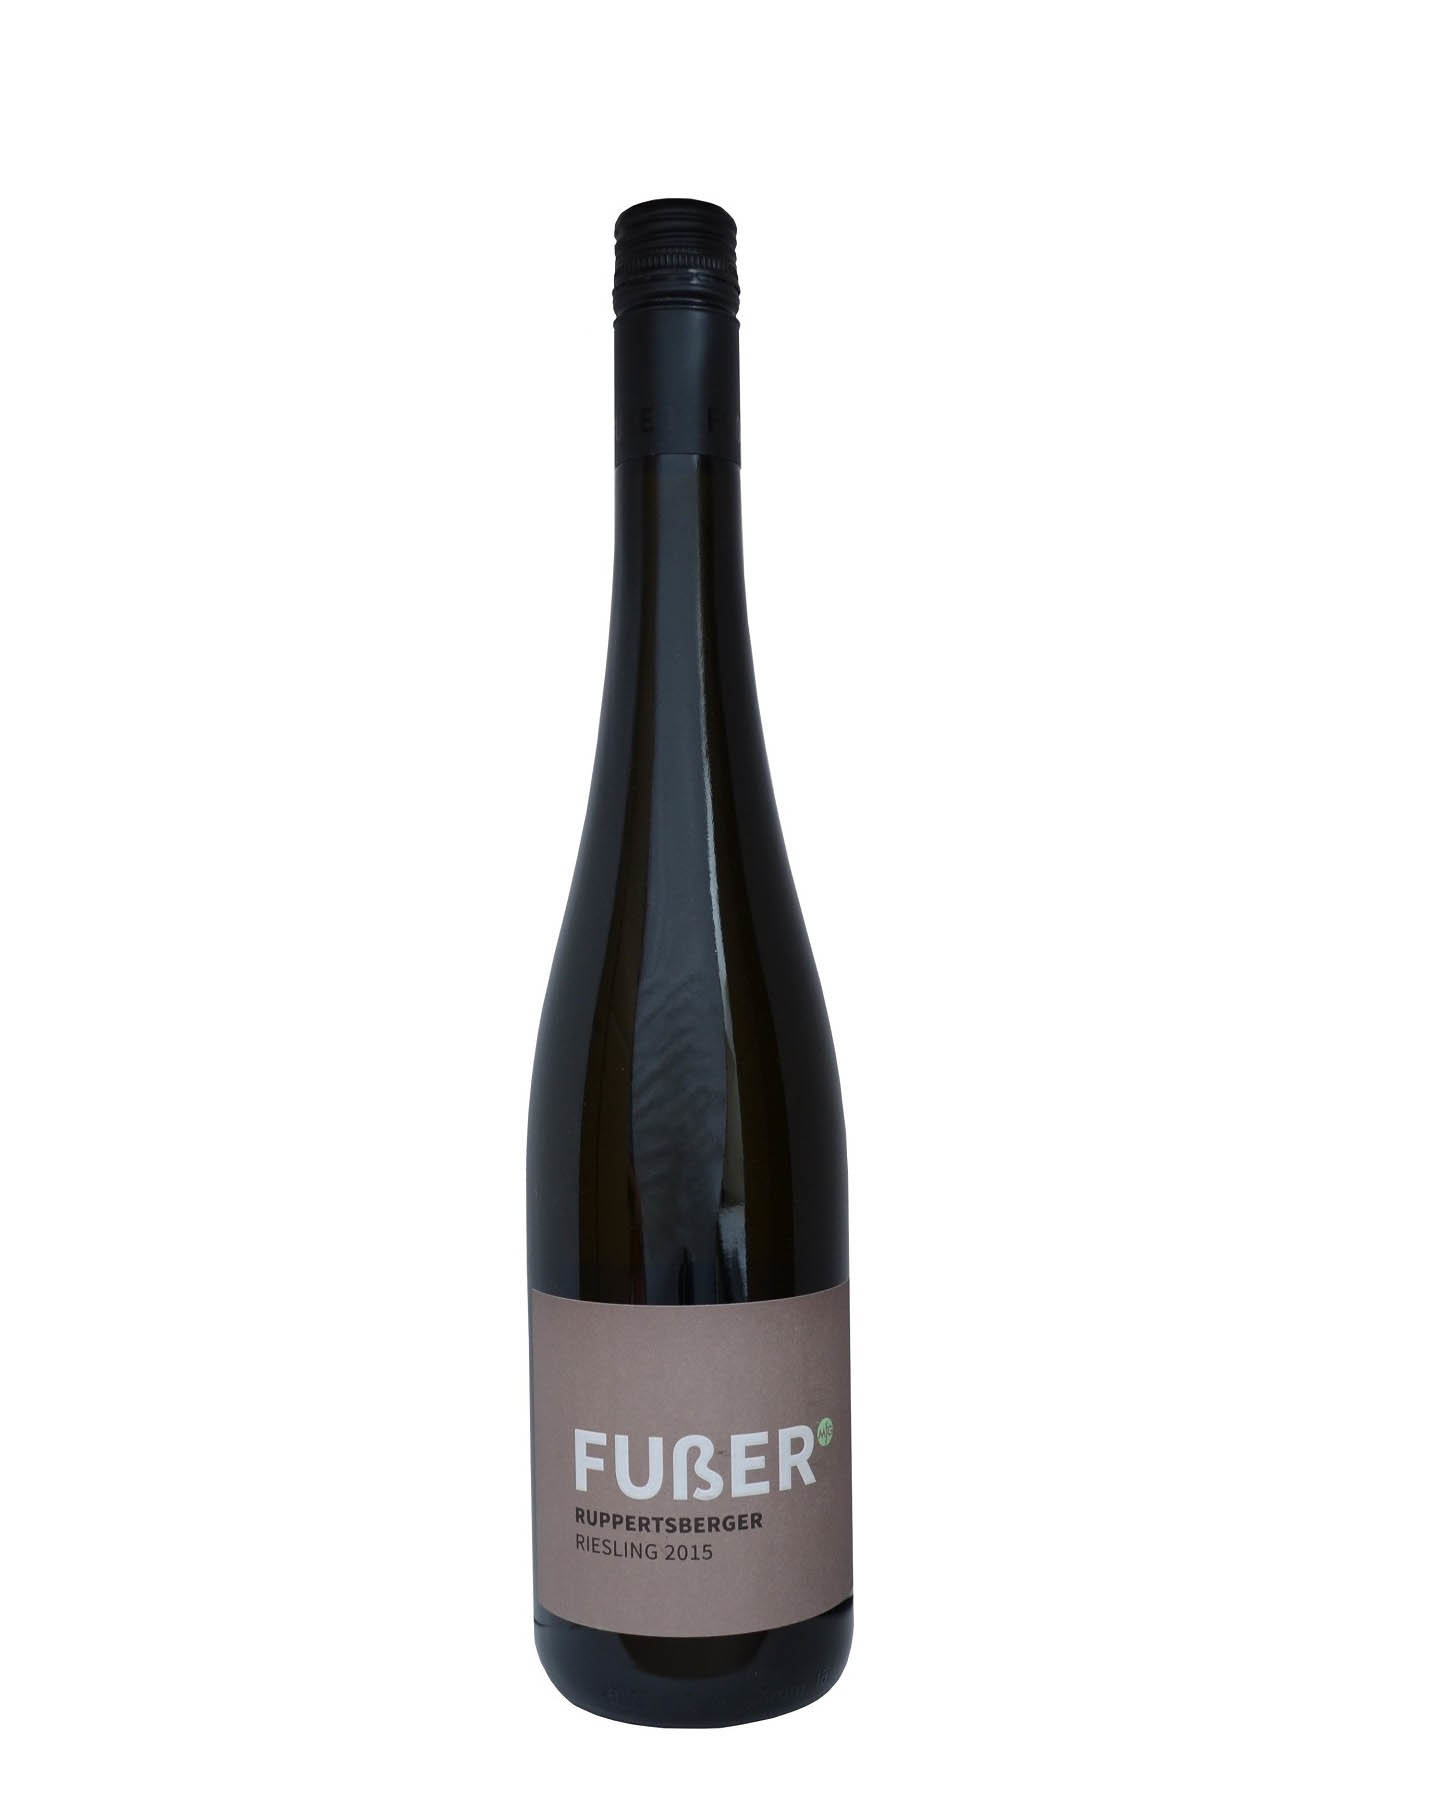 COOK and ENJOY Shop Ruppertsberger Riesling Pfalz Martin und Georg Fußer 2015 Bio